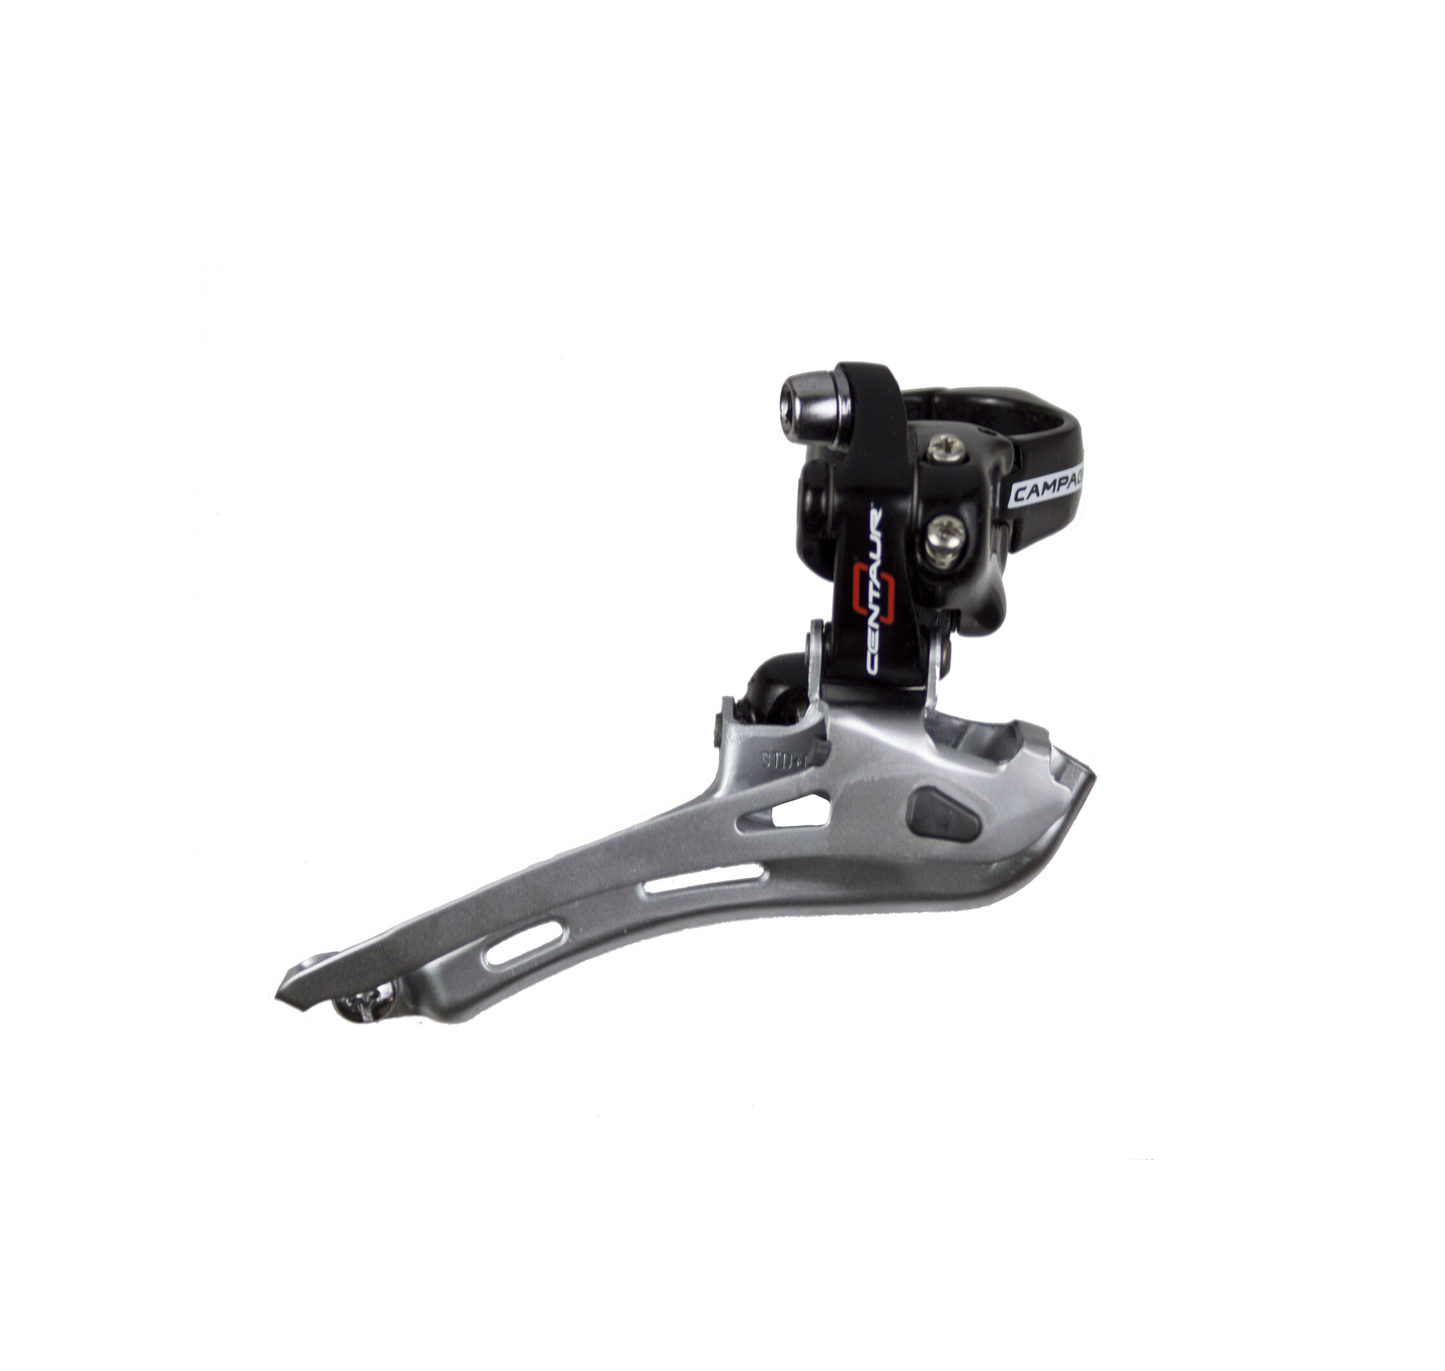 CAMPAGNOLO | 10sp 32mm. clip on front derailleur